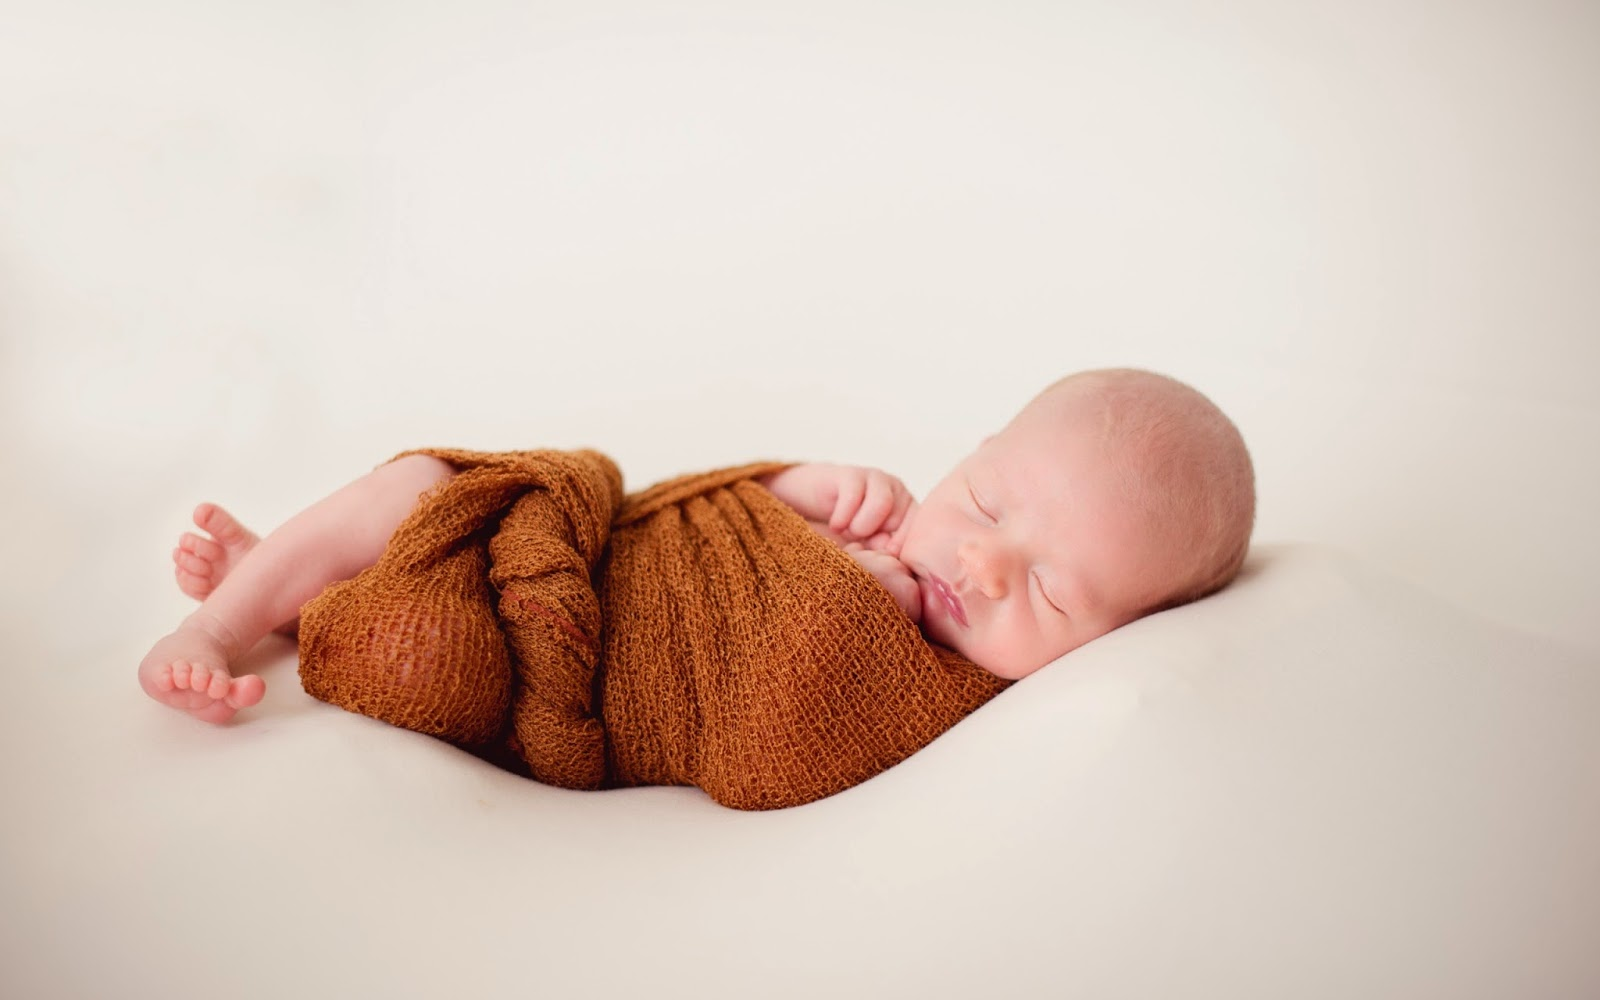 Baby-wrapped-in-cloth-cute-sleep-picture.jpg